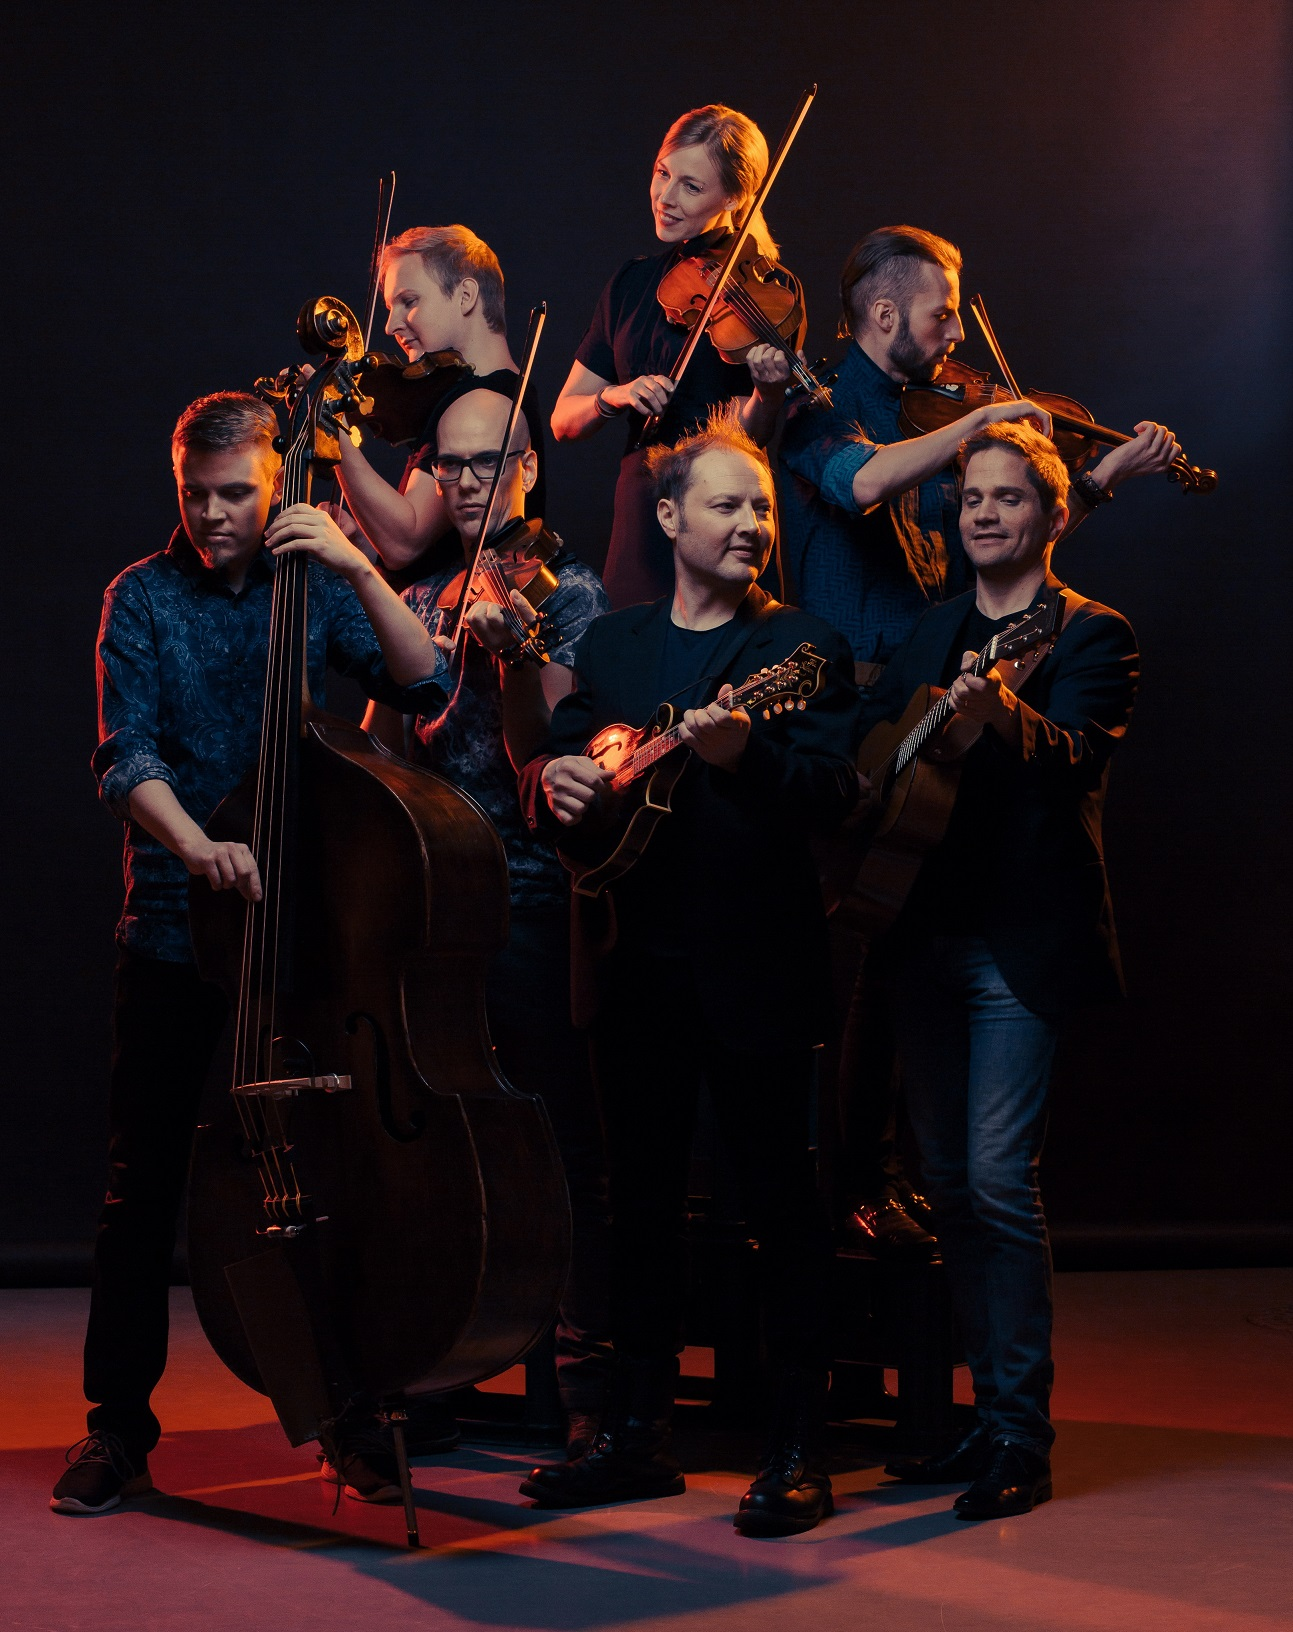 Die Powerfolk Band Frigg